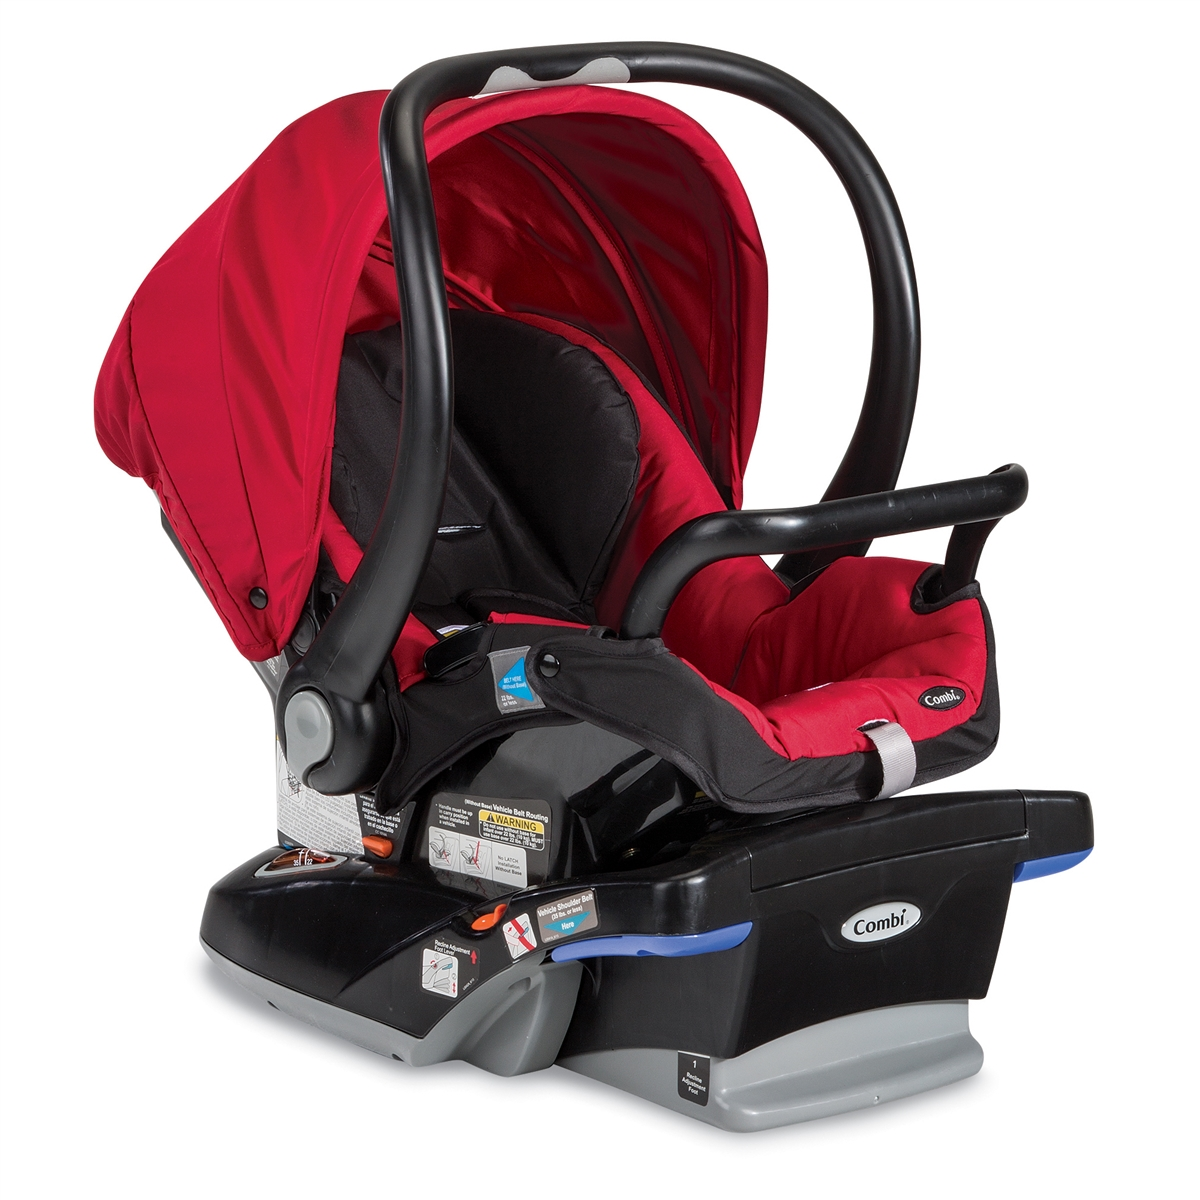 Best Infant Car Seats Review in 2017